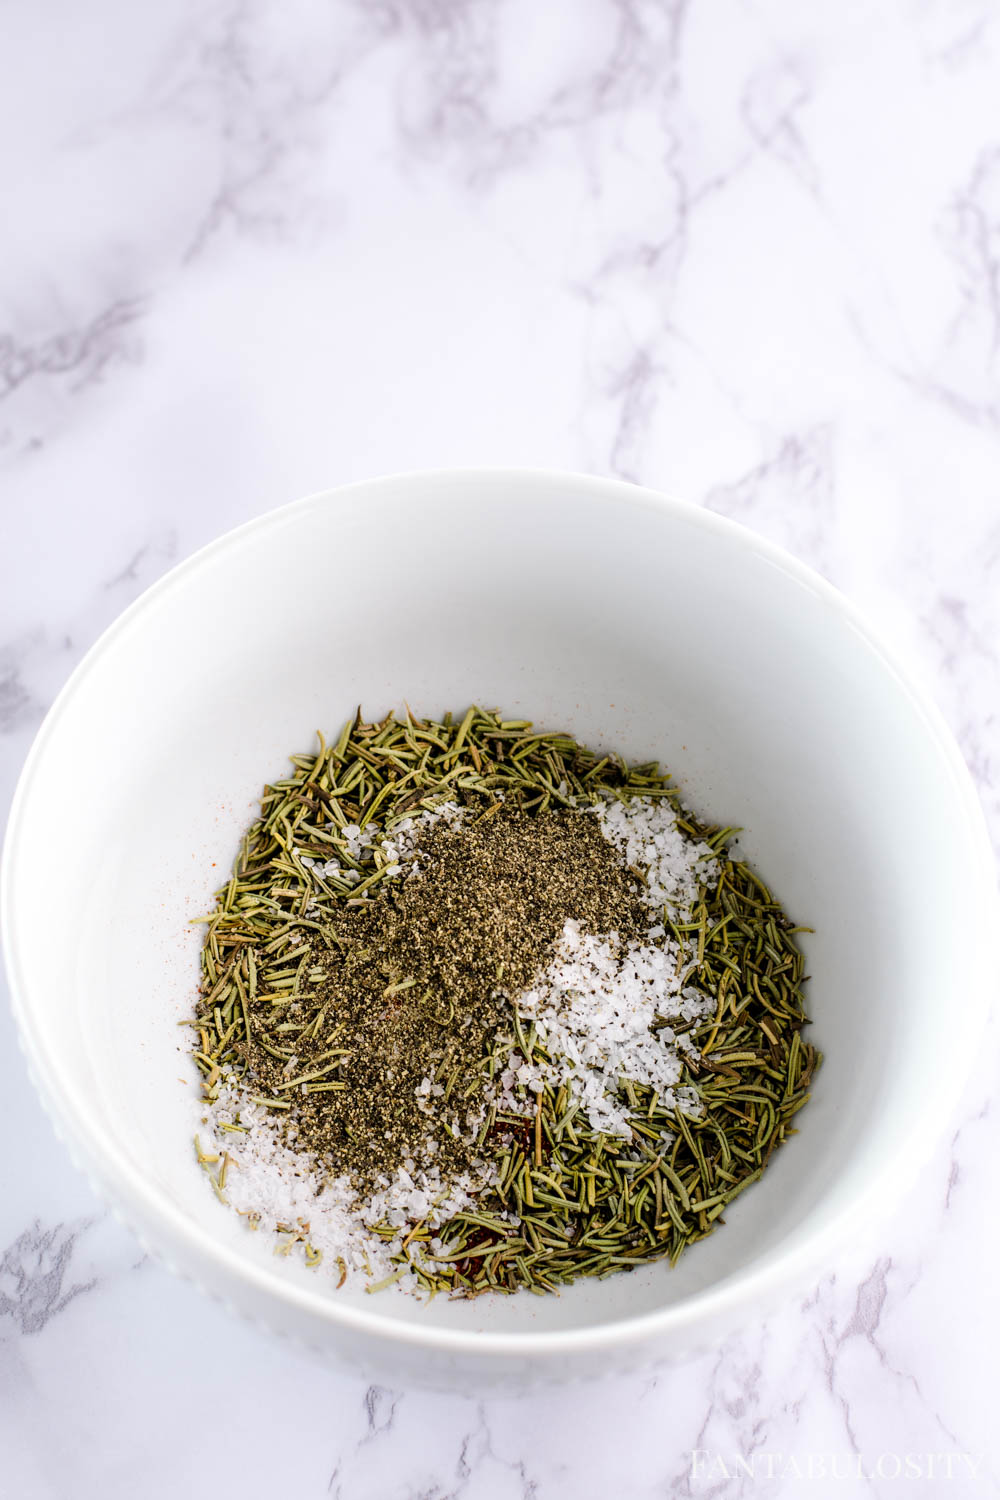 Spice mixture and rub for chicken tenders